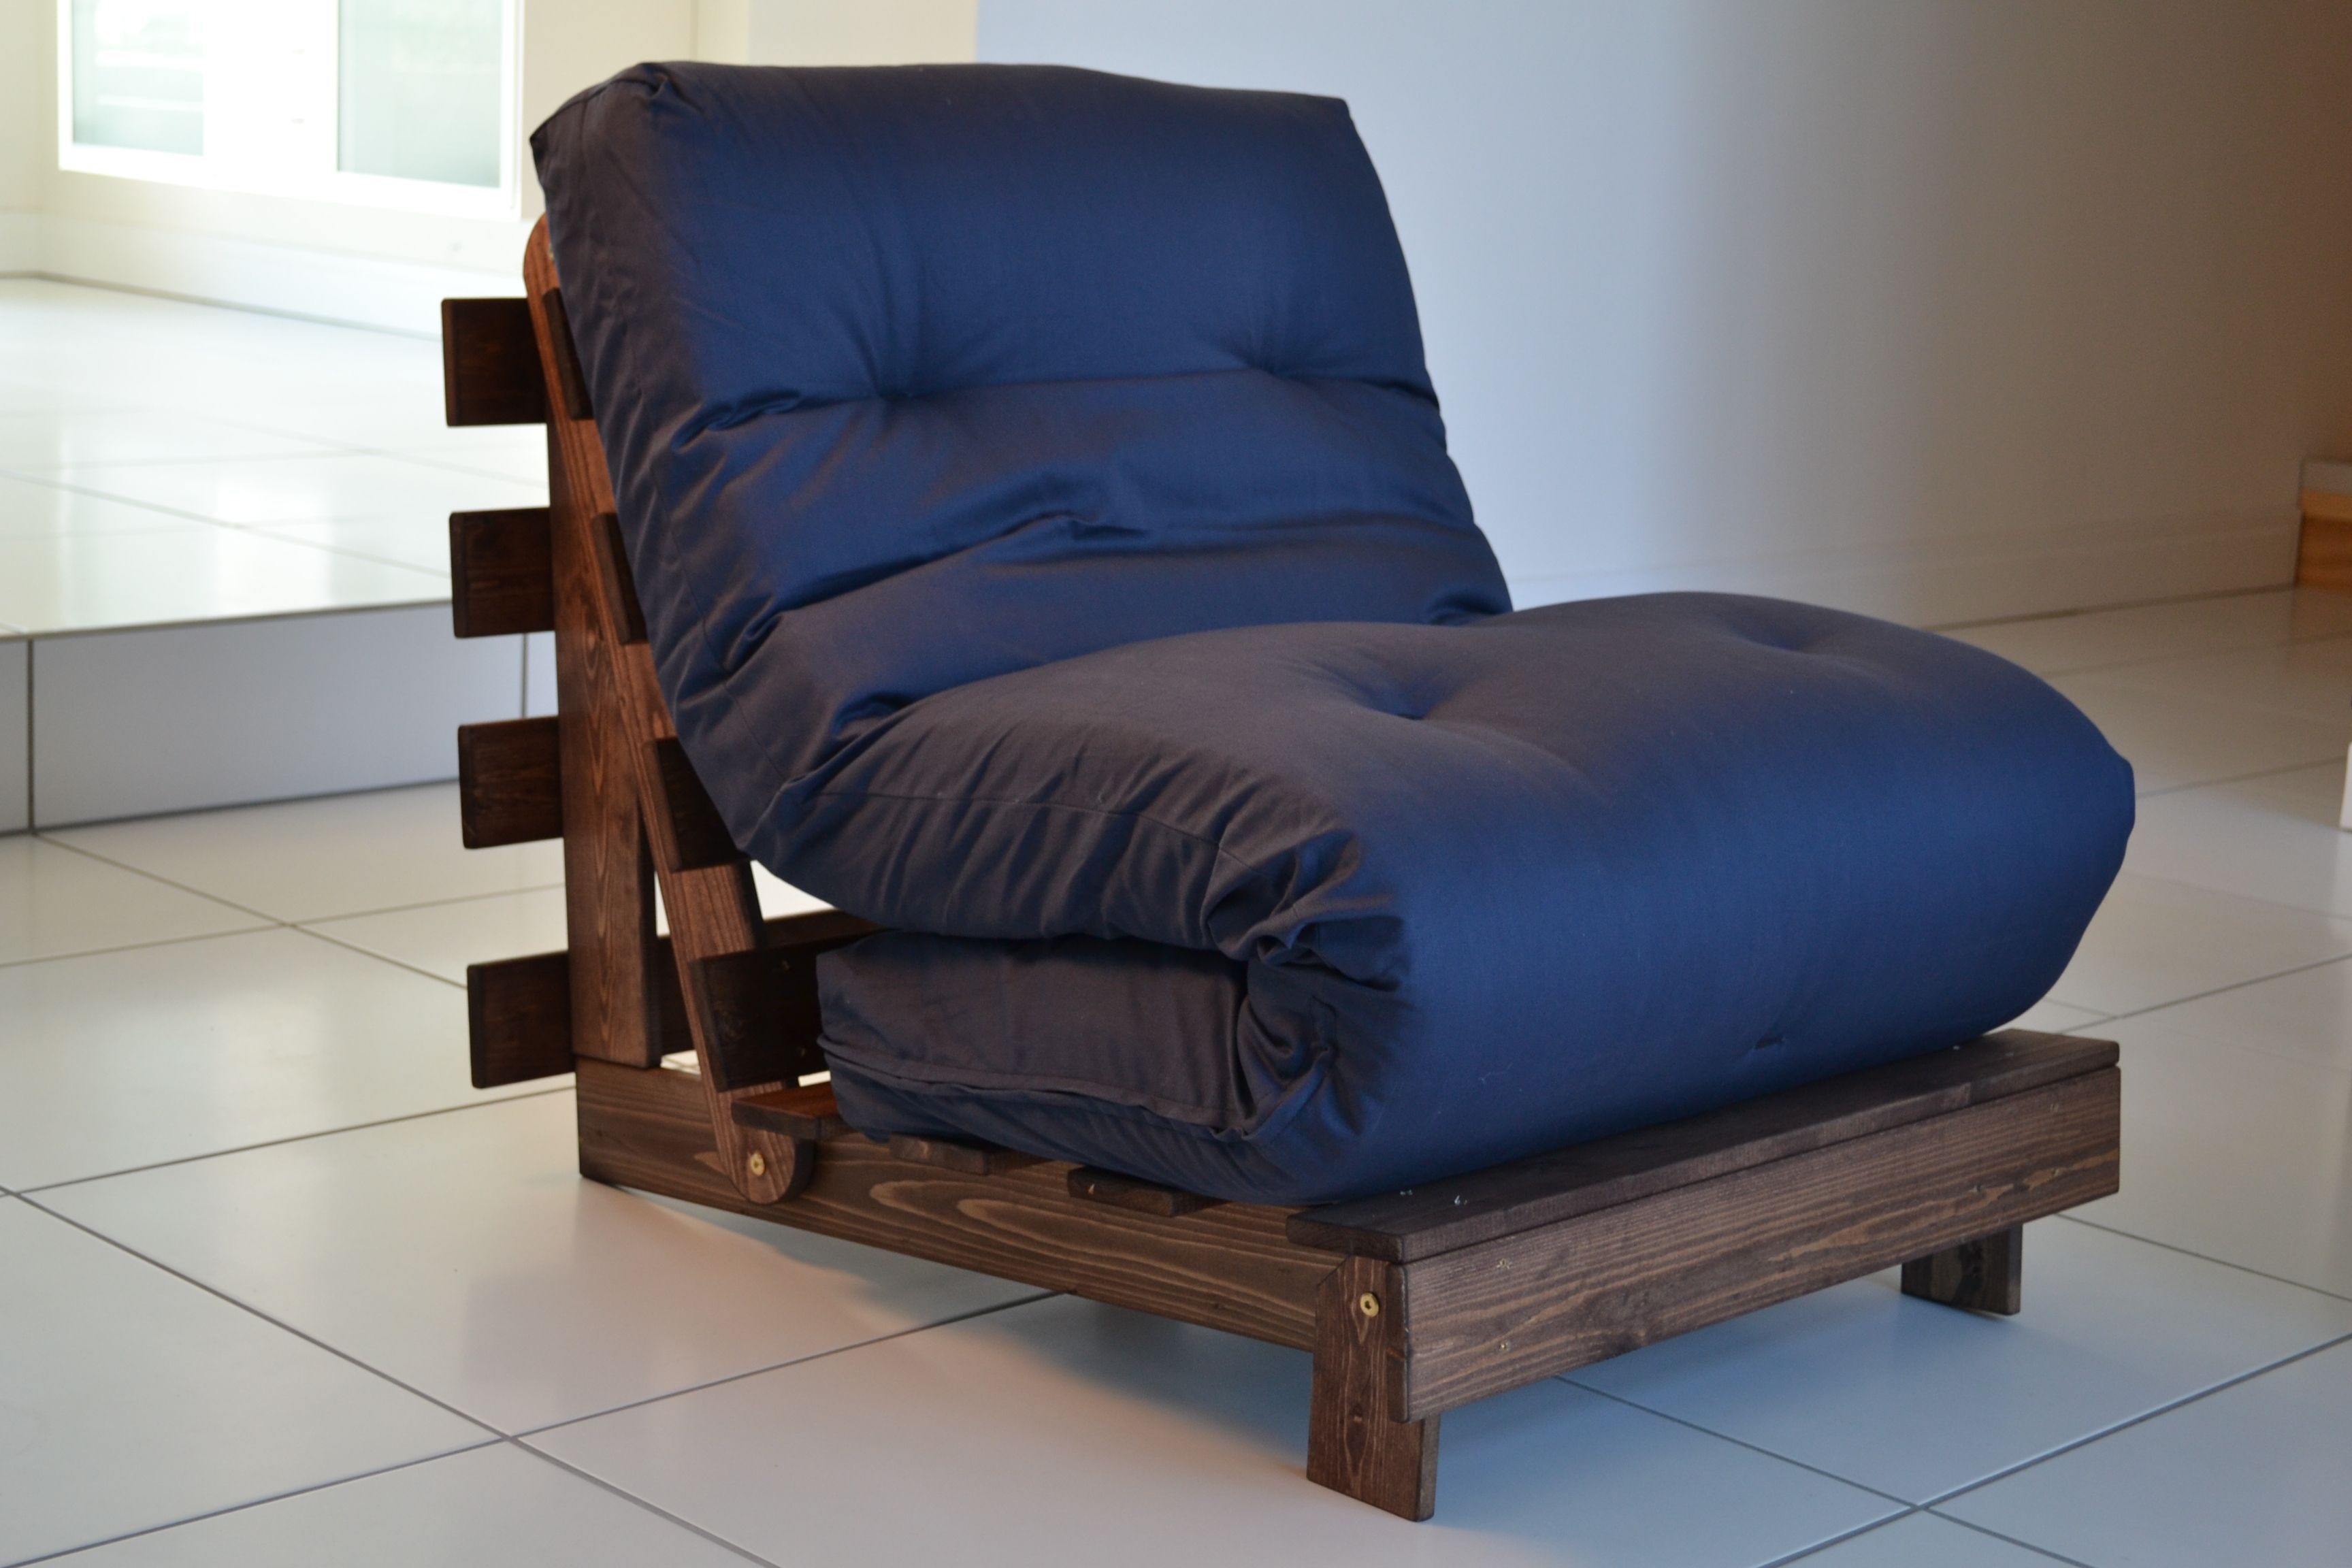 A blue futon folded up onto a brown DIY wood pallet chair